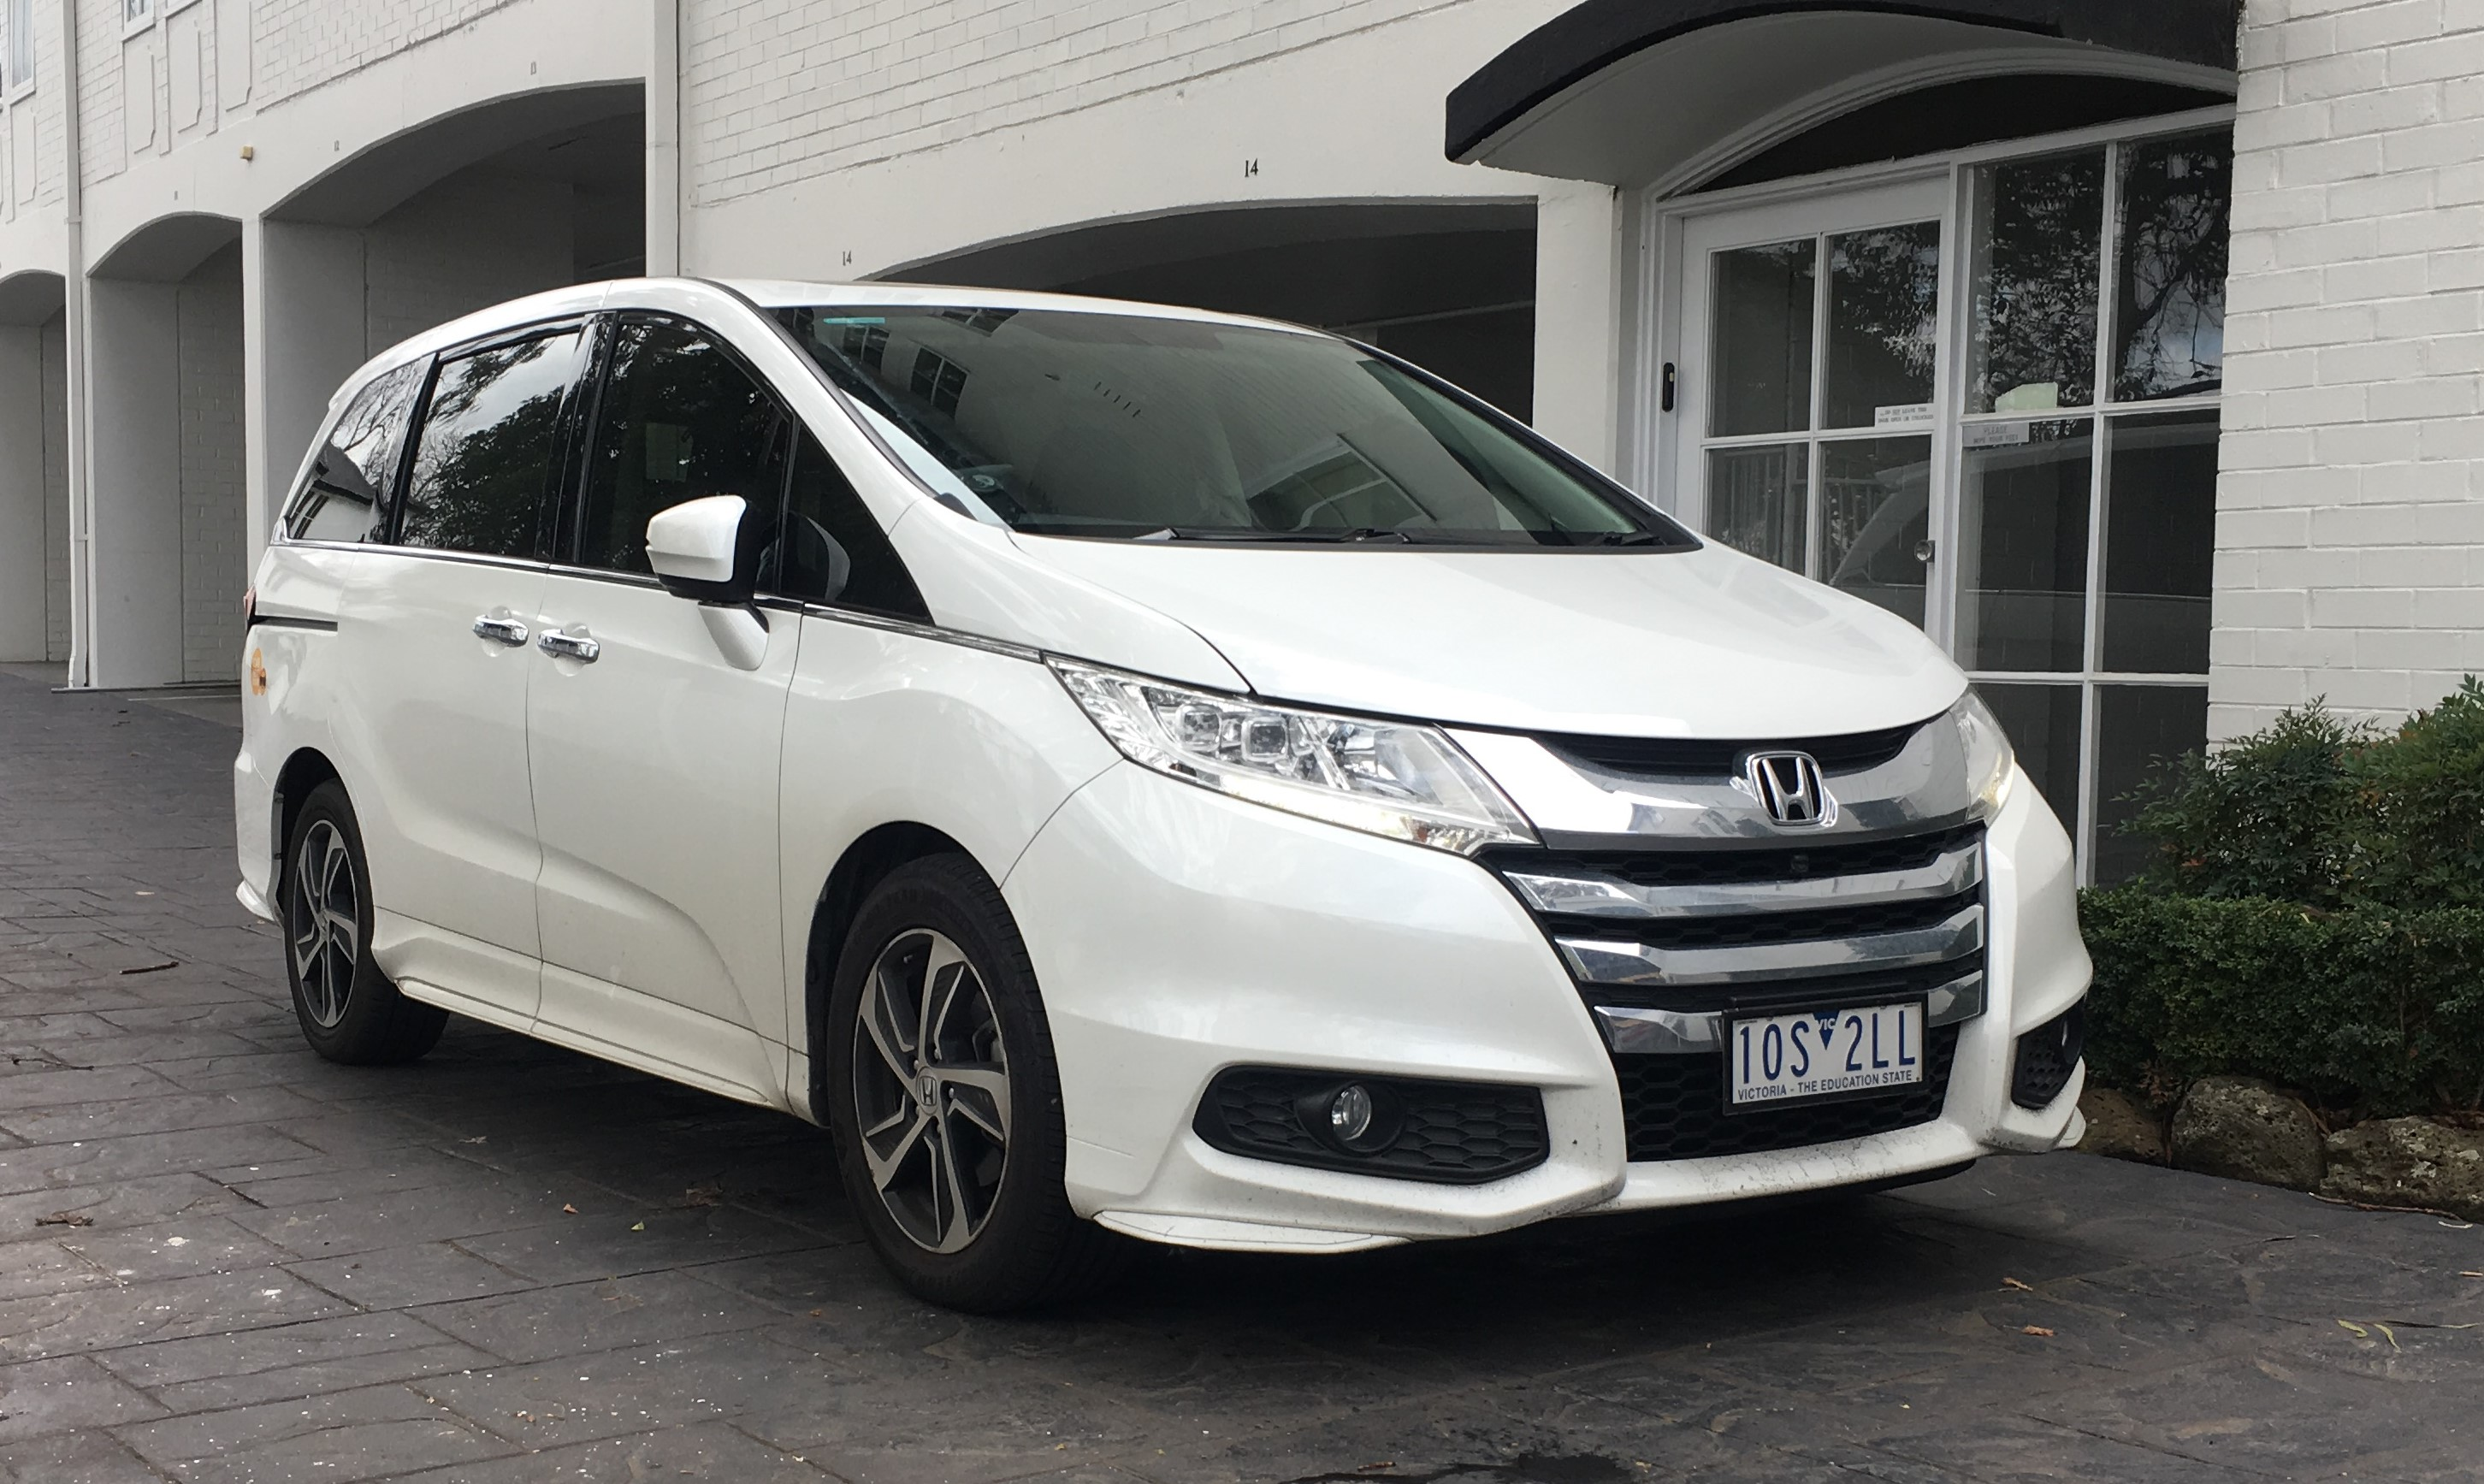 Picture of Mei's 2014 Honda Odyssey